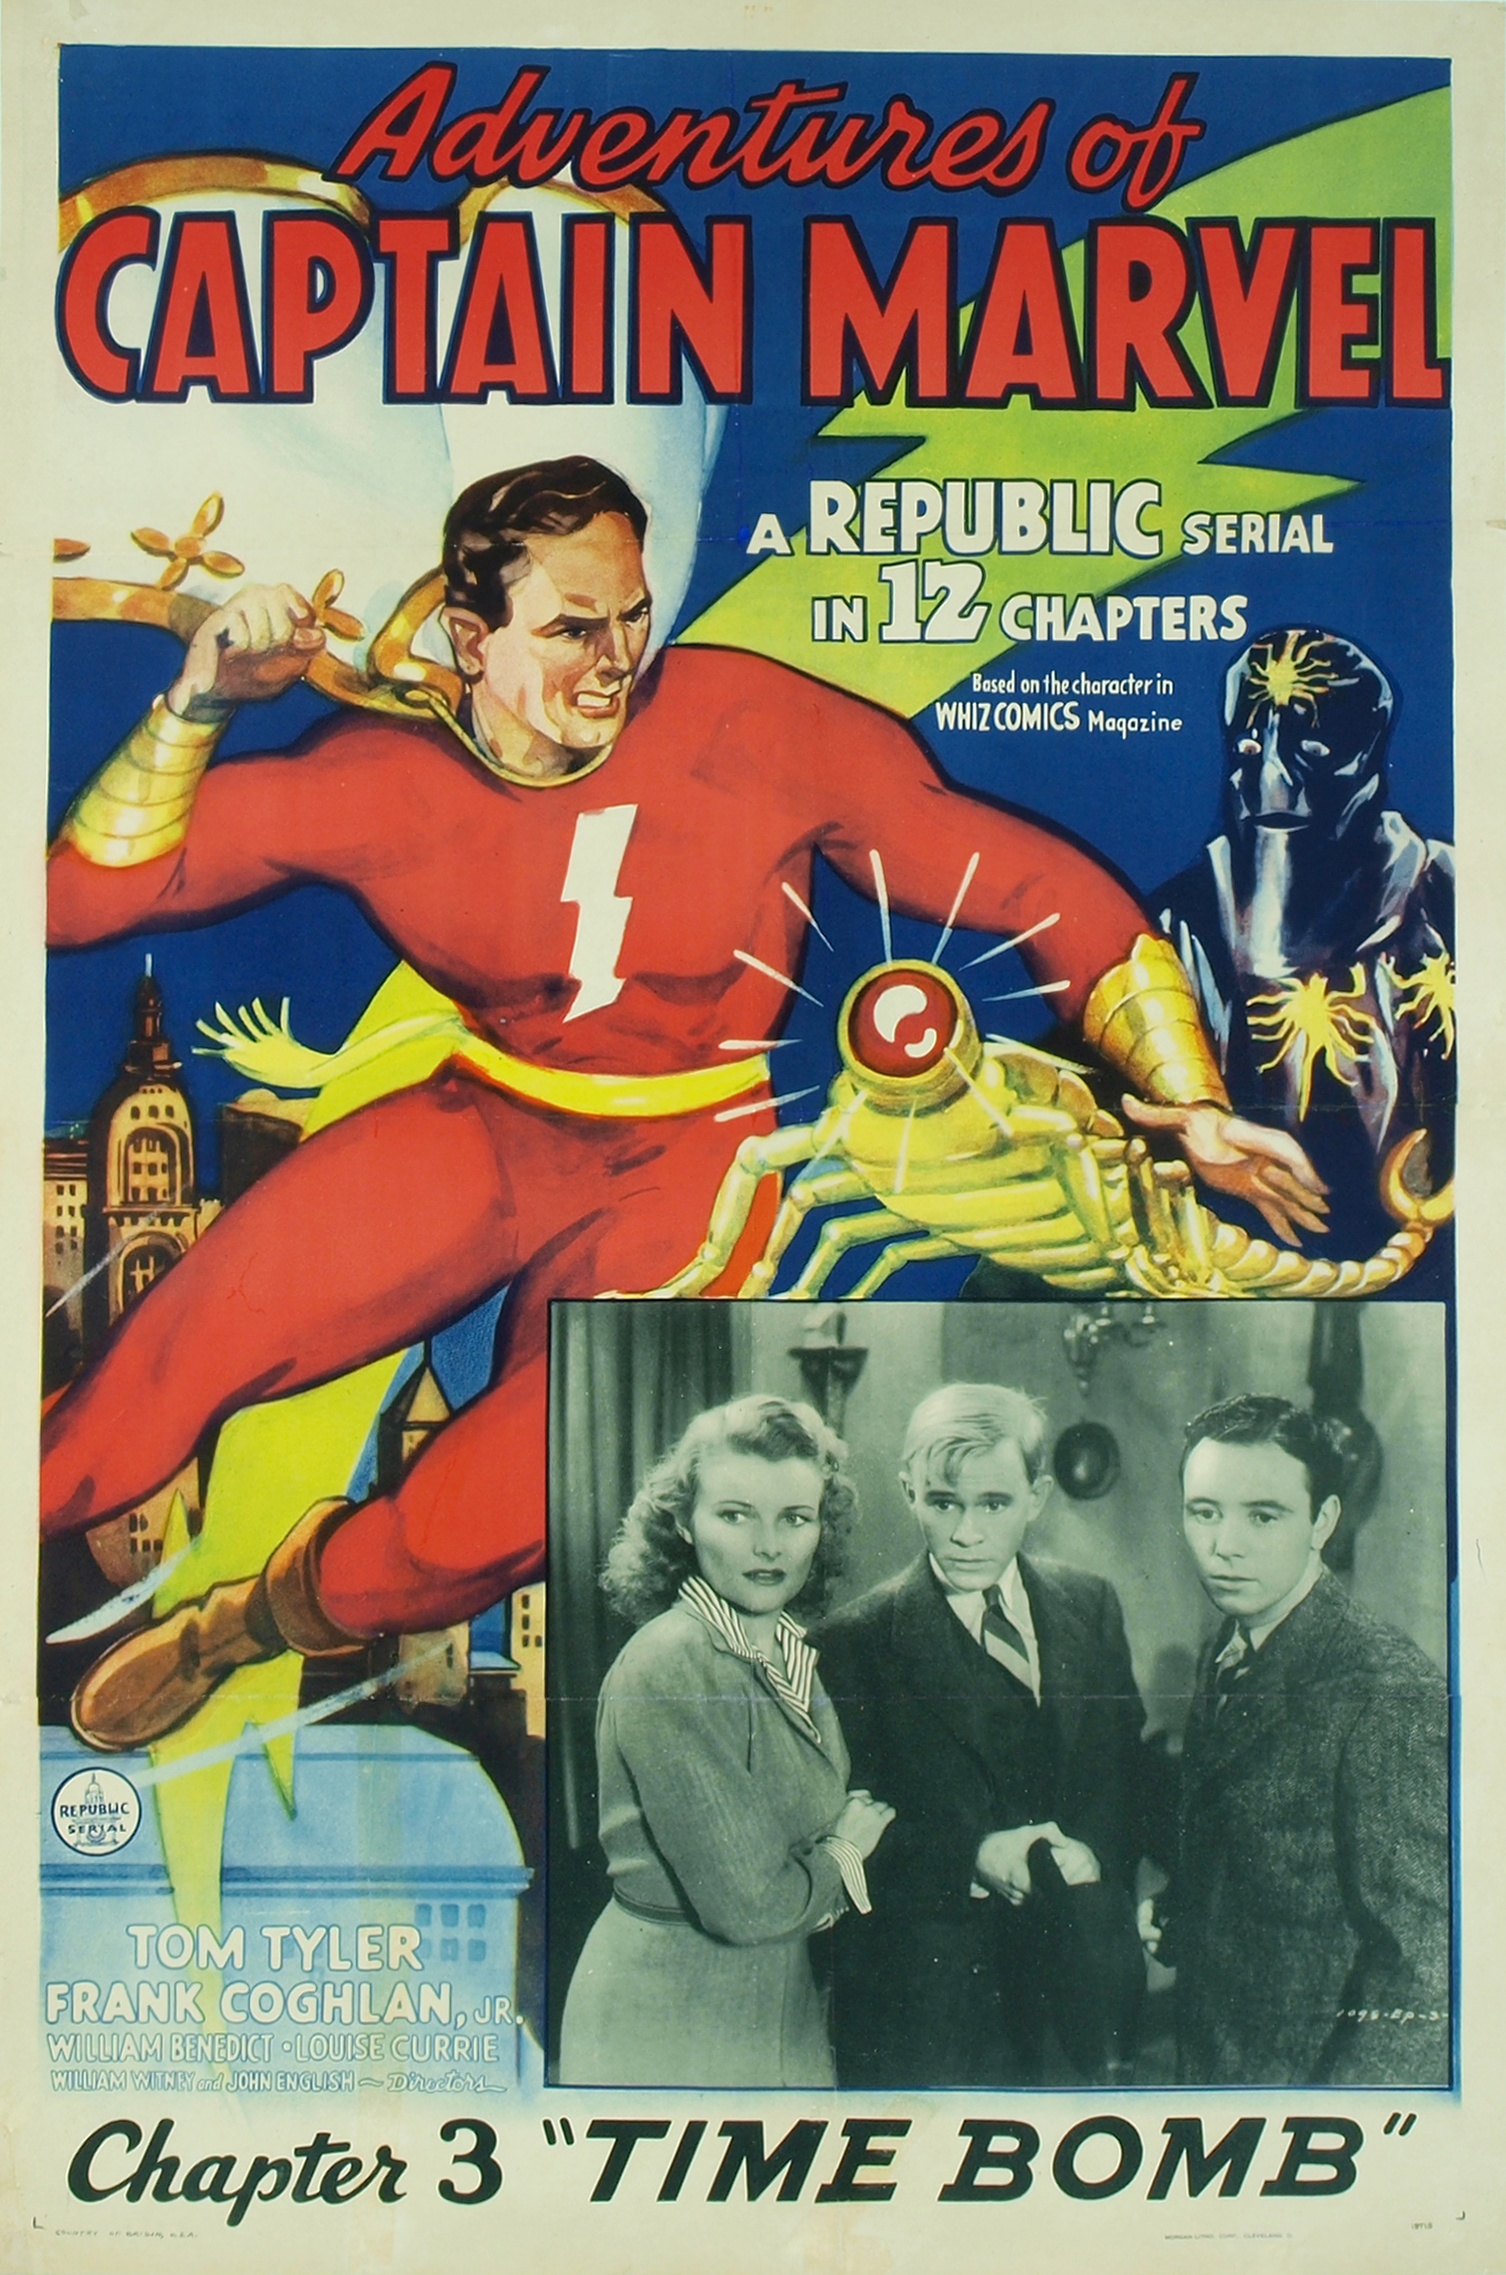 all about adventures of captain marvel 1941 imdb - kidskunst